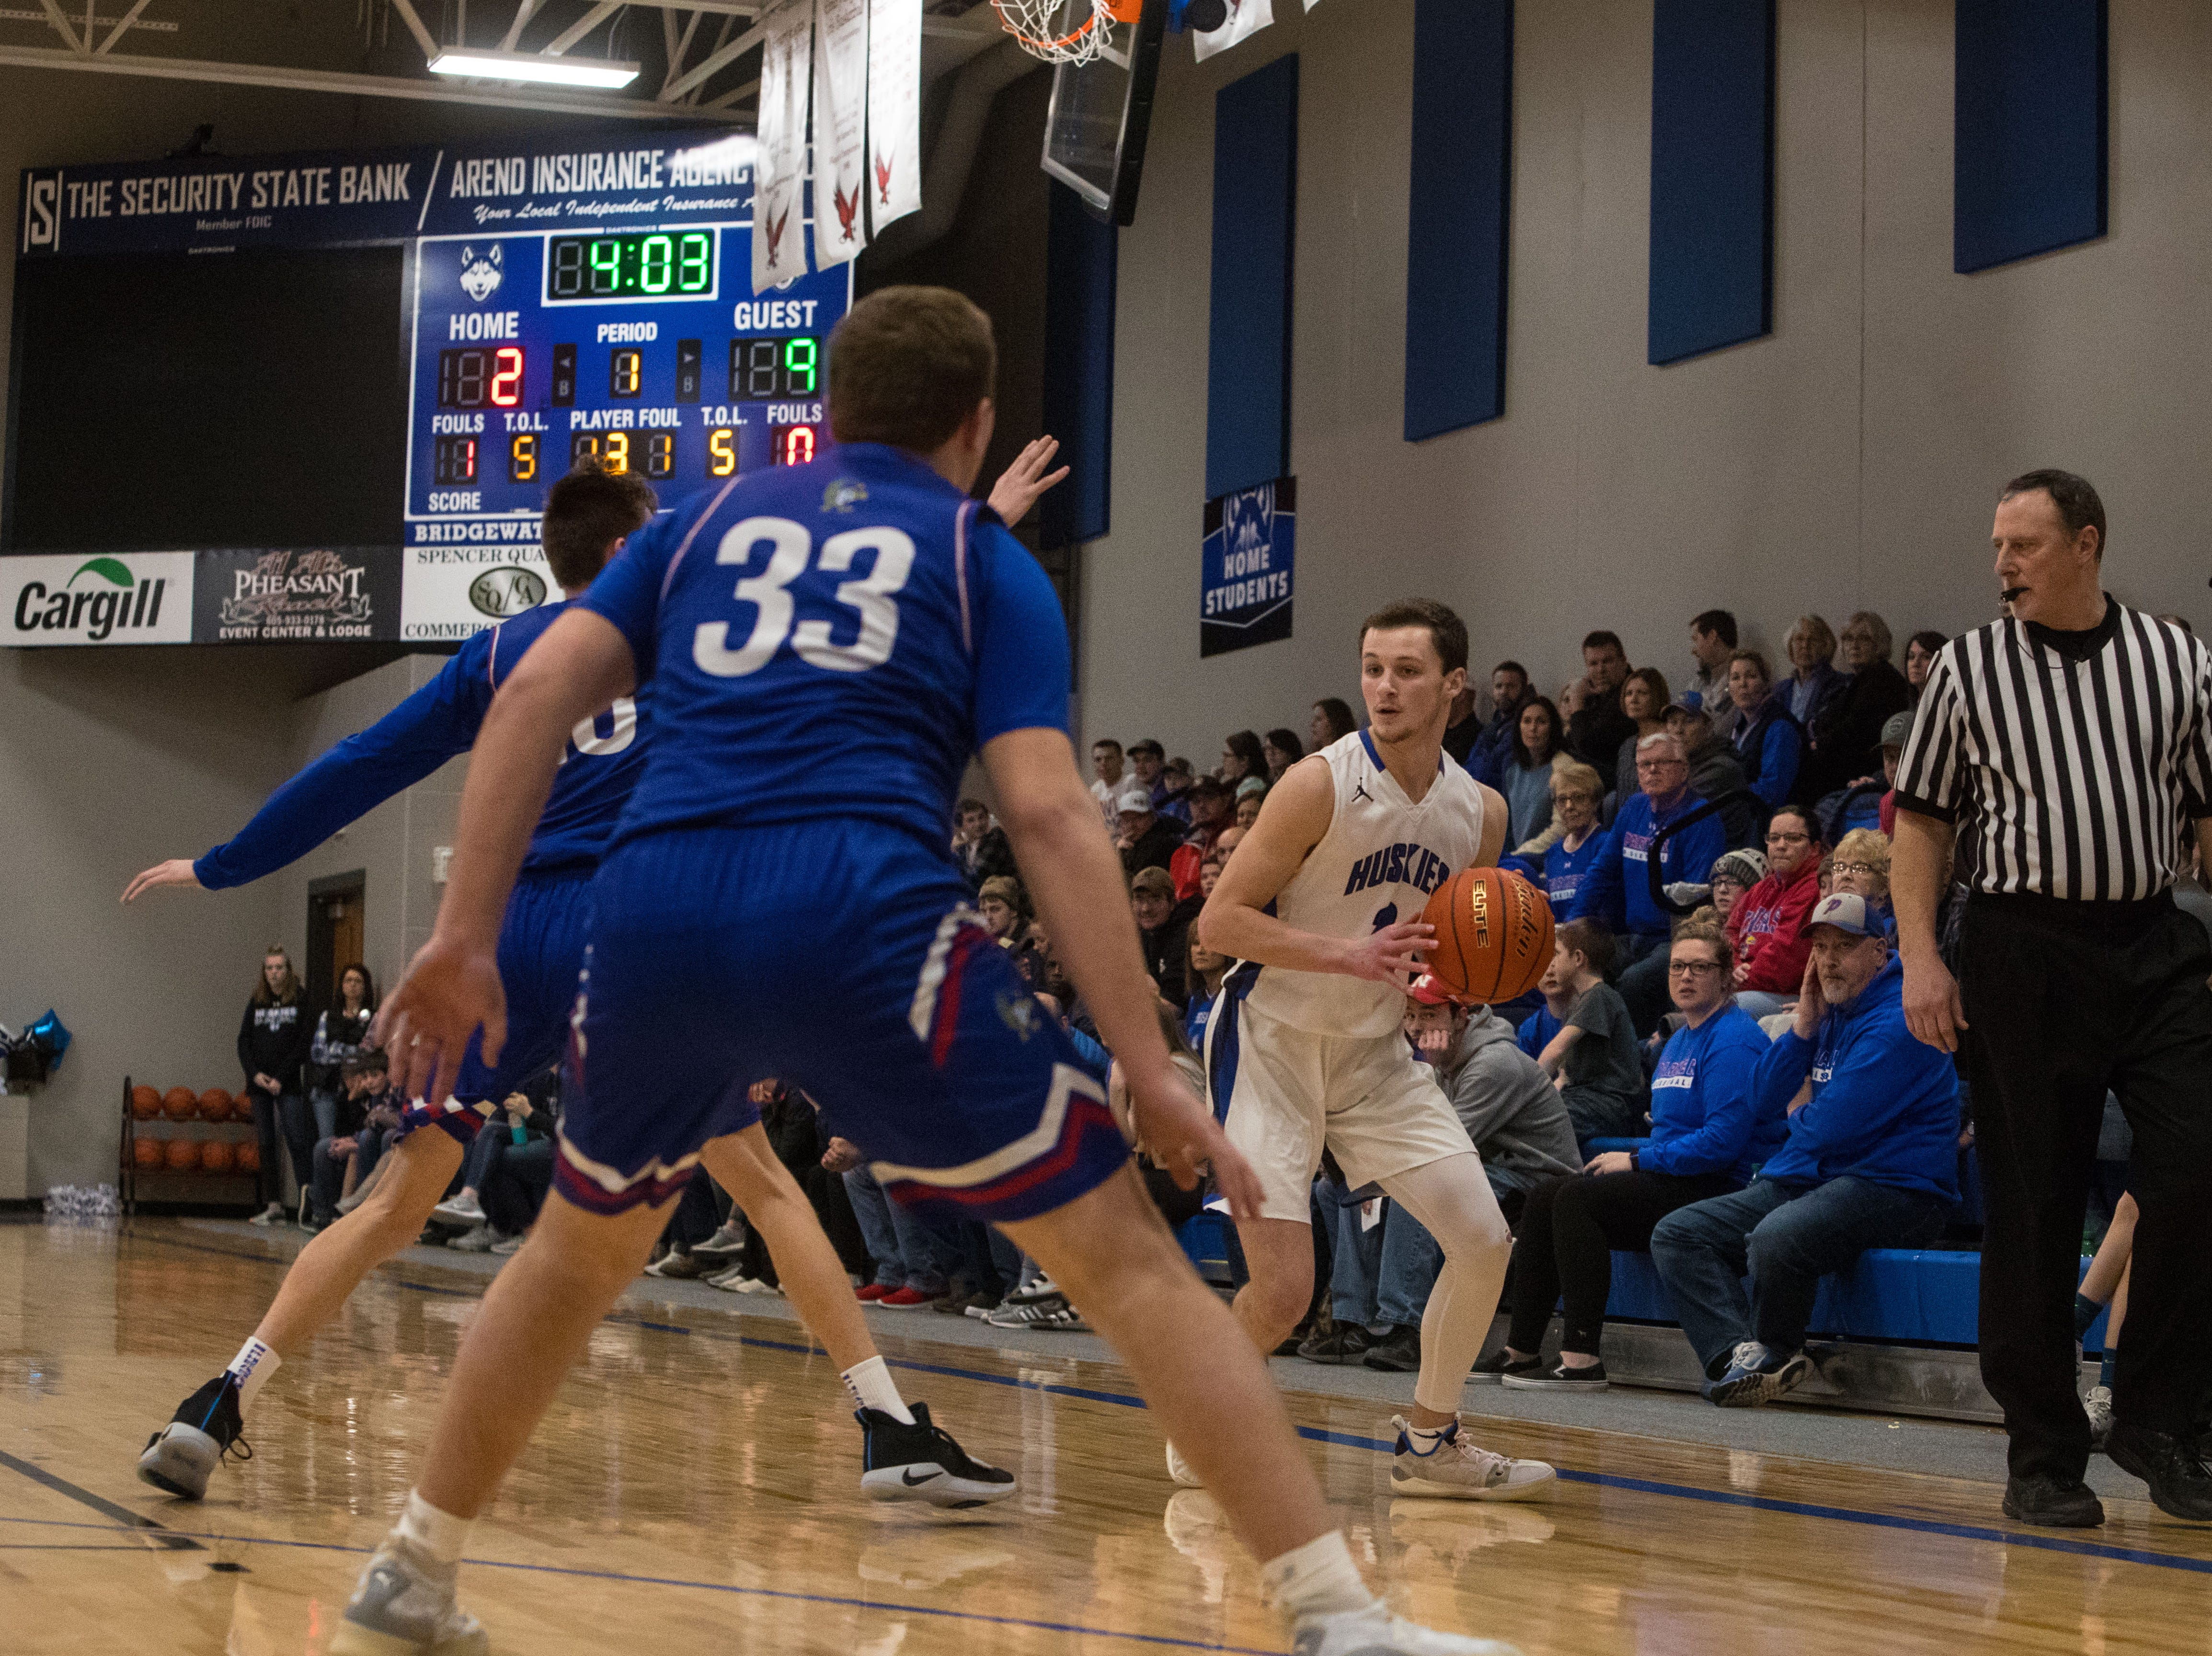 Bridgewater Emery's Sawyer Schultz (3) looks to pass the ball during a game against Parker, Friday, Feb. 15, 2019 in Emery, S.D.